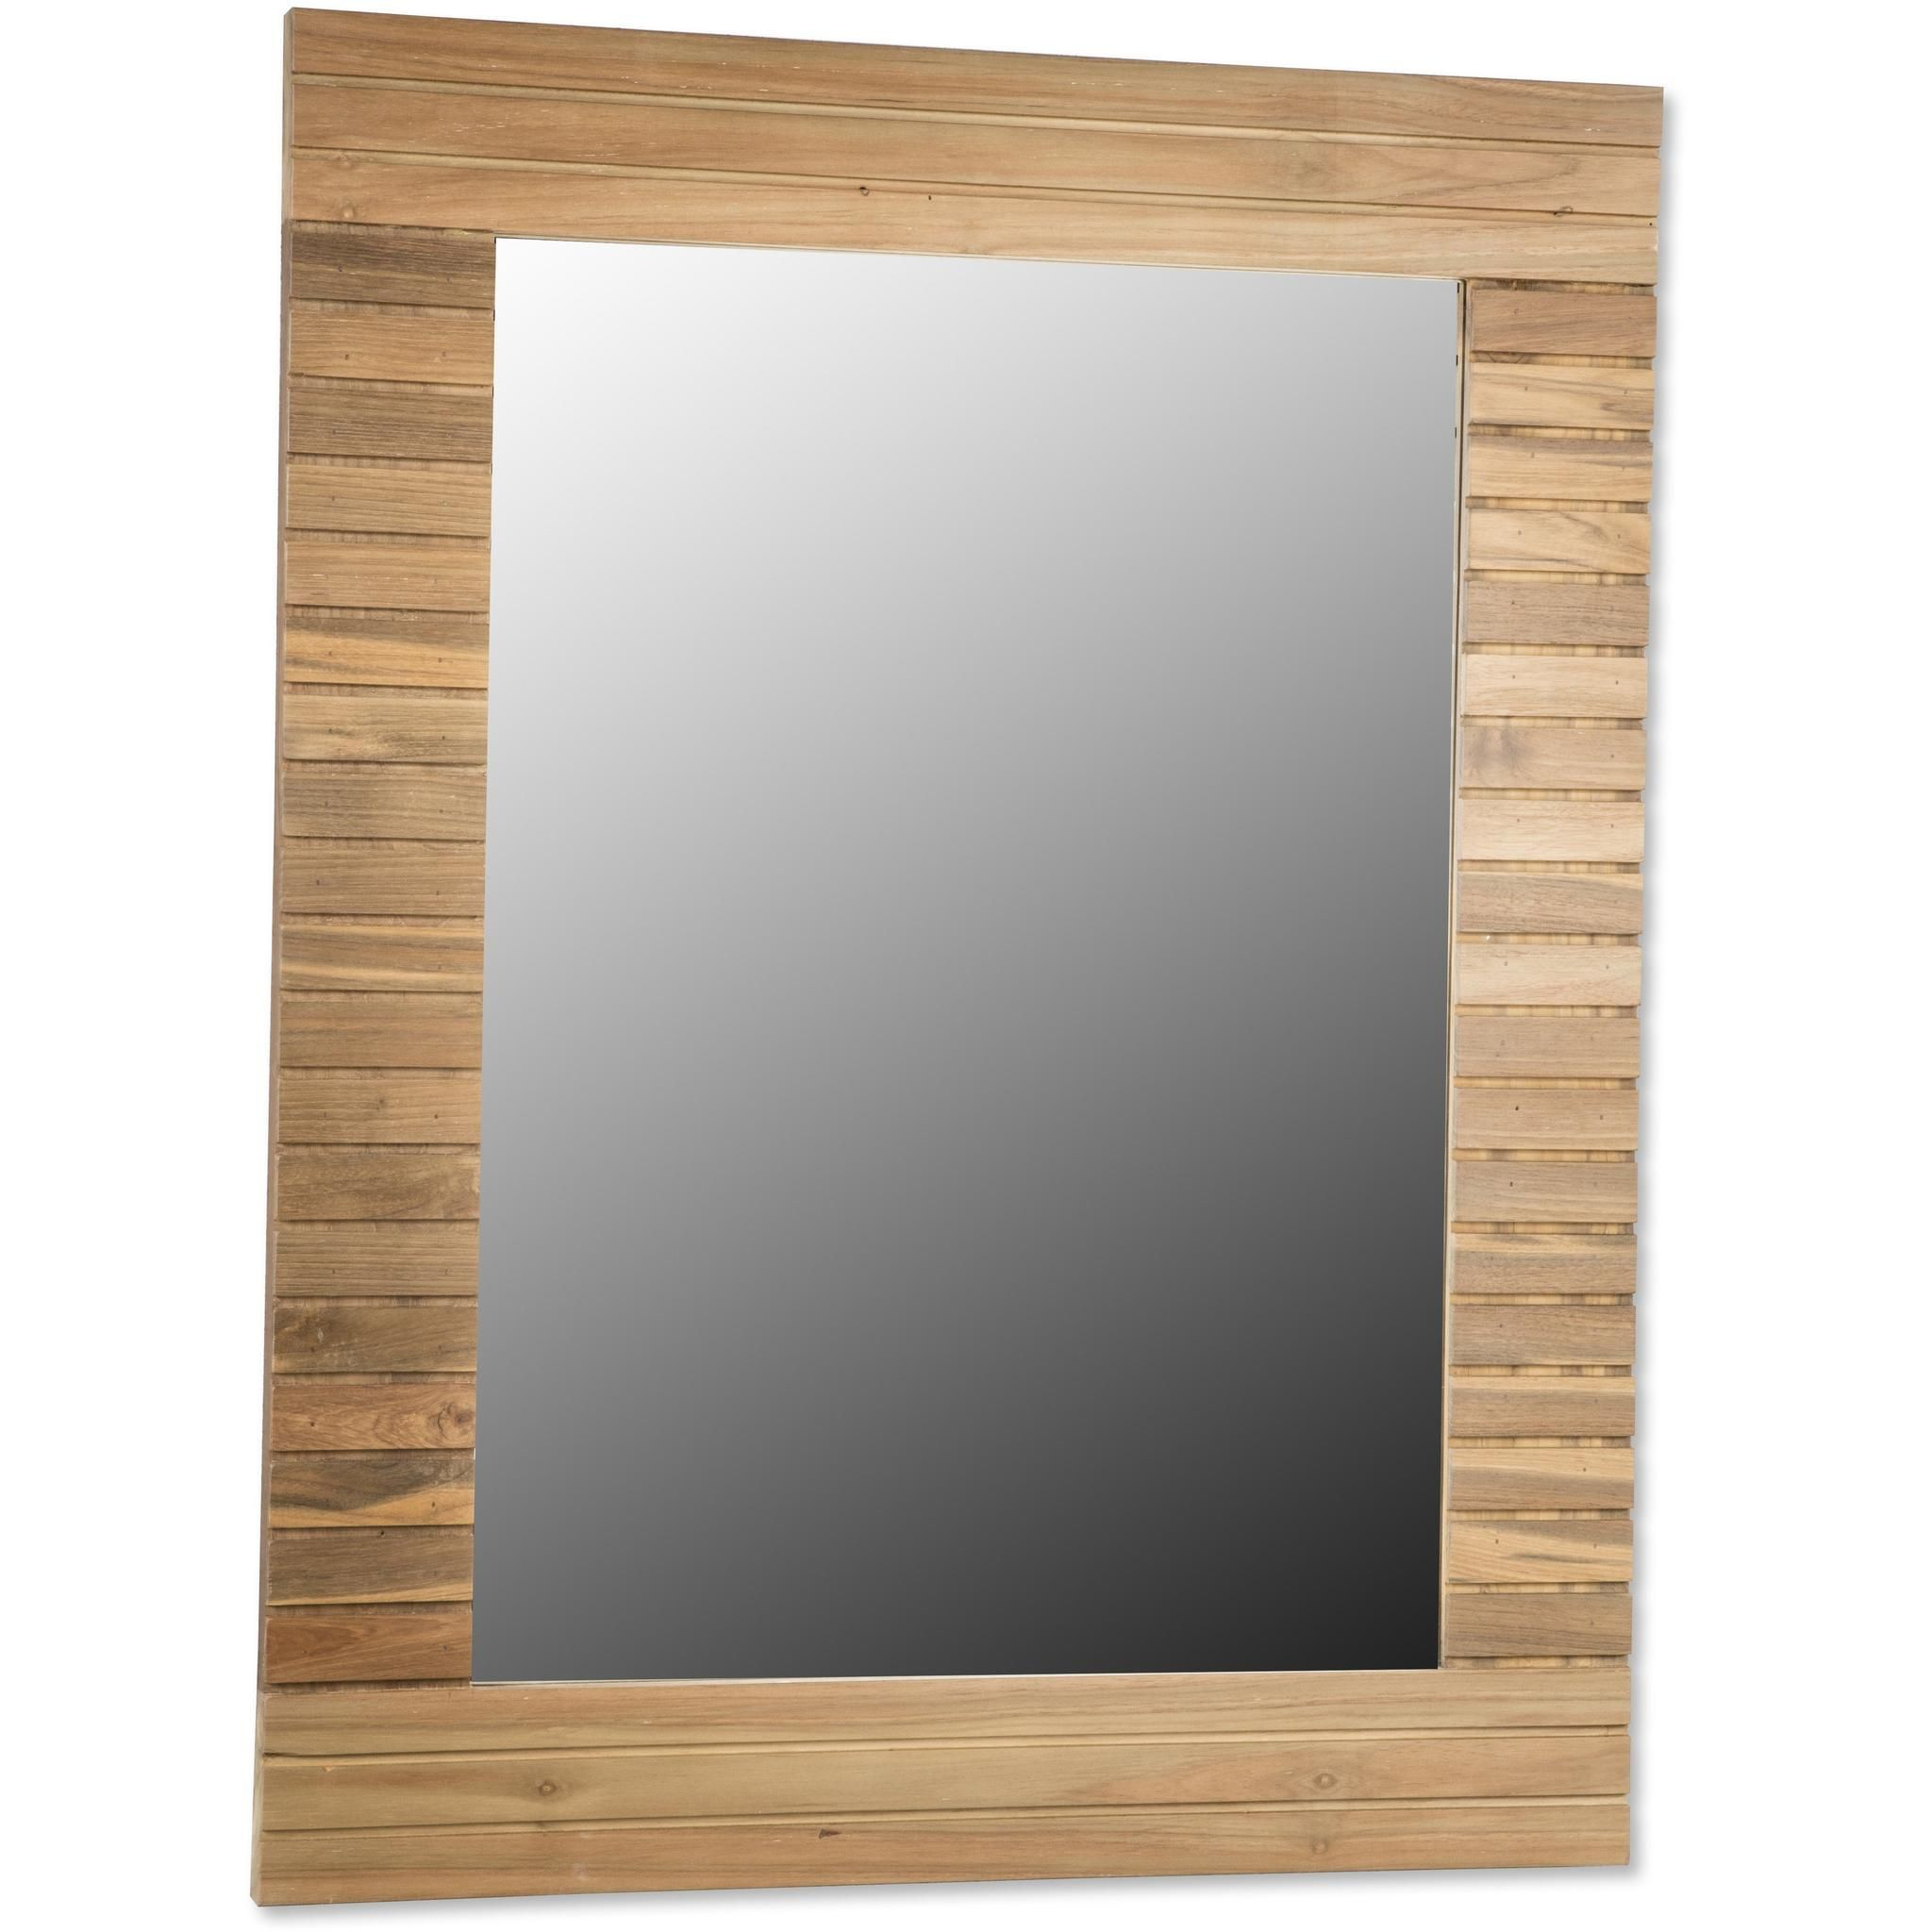 Cp Stripes Wall Mirror With Teak Wood Frame For Bathroom